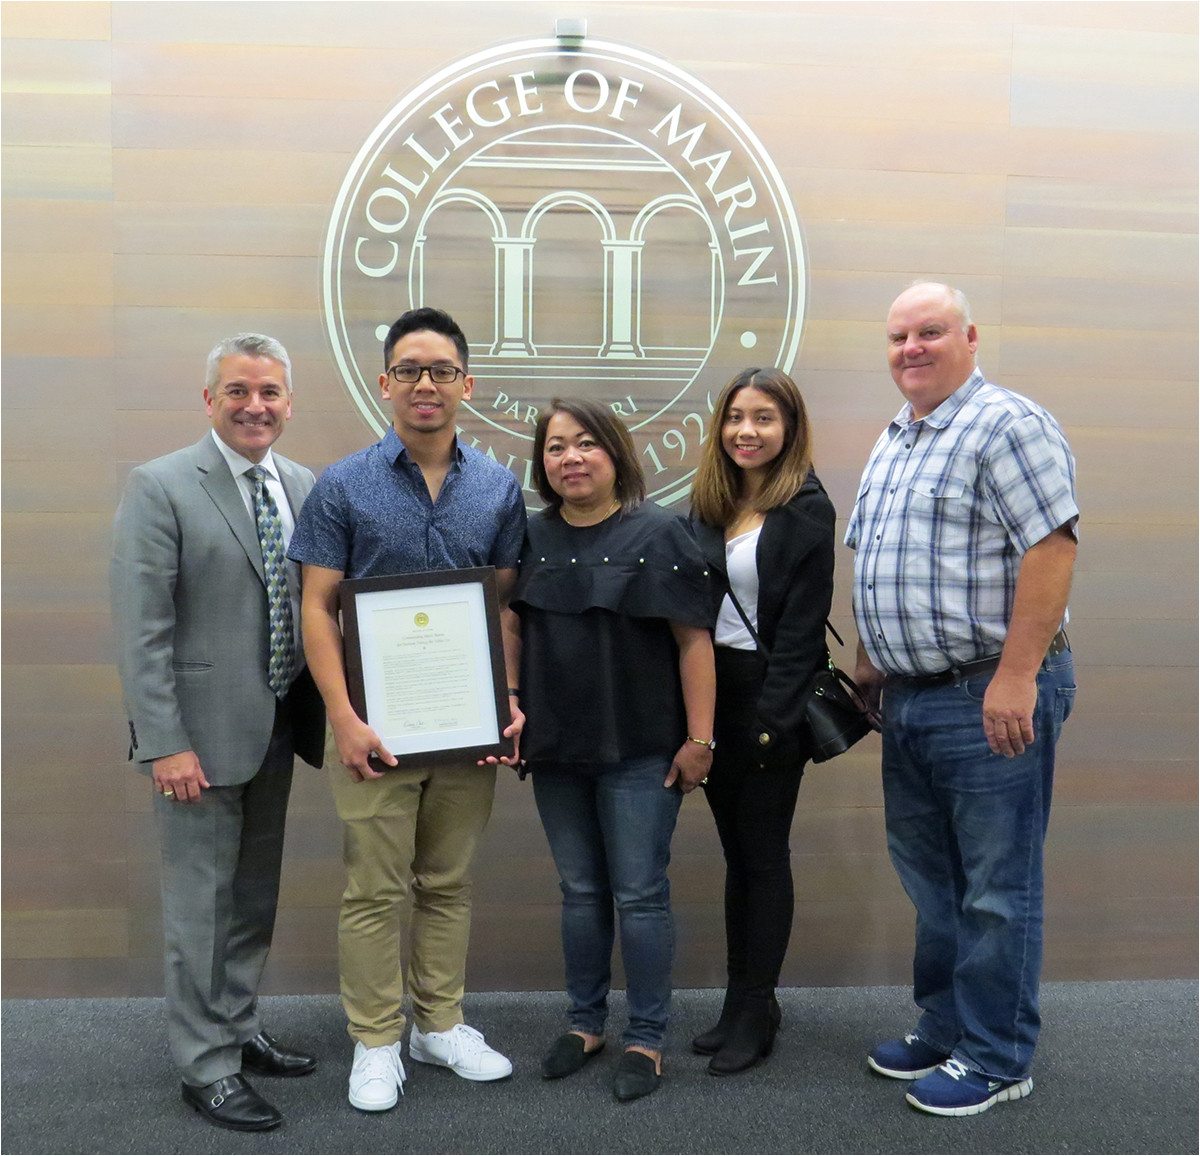 College Of Marin Library Catalog Board Commends Nursing Student Mario Monte for Heroism During Tubbs